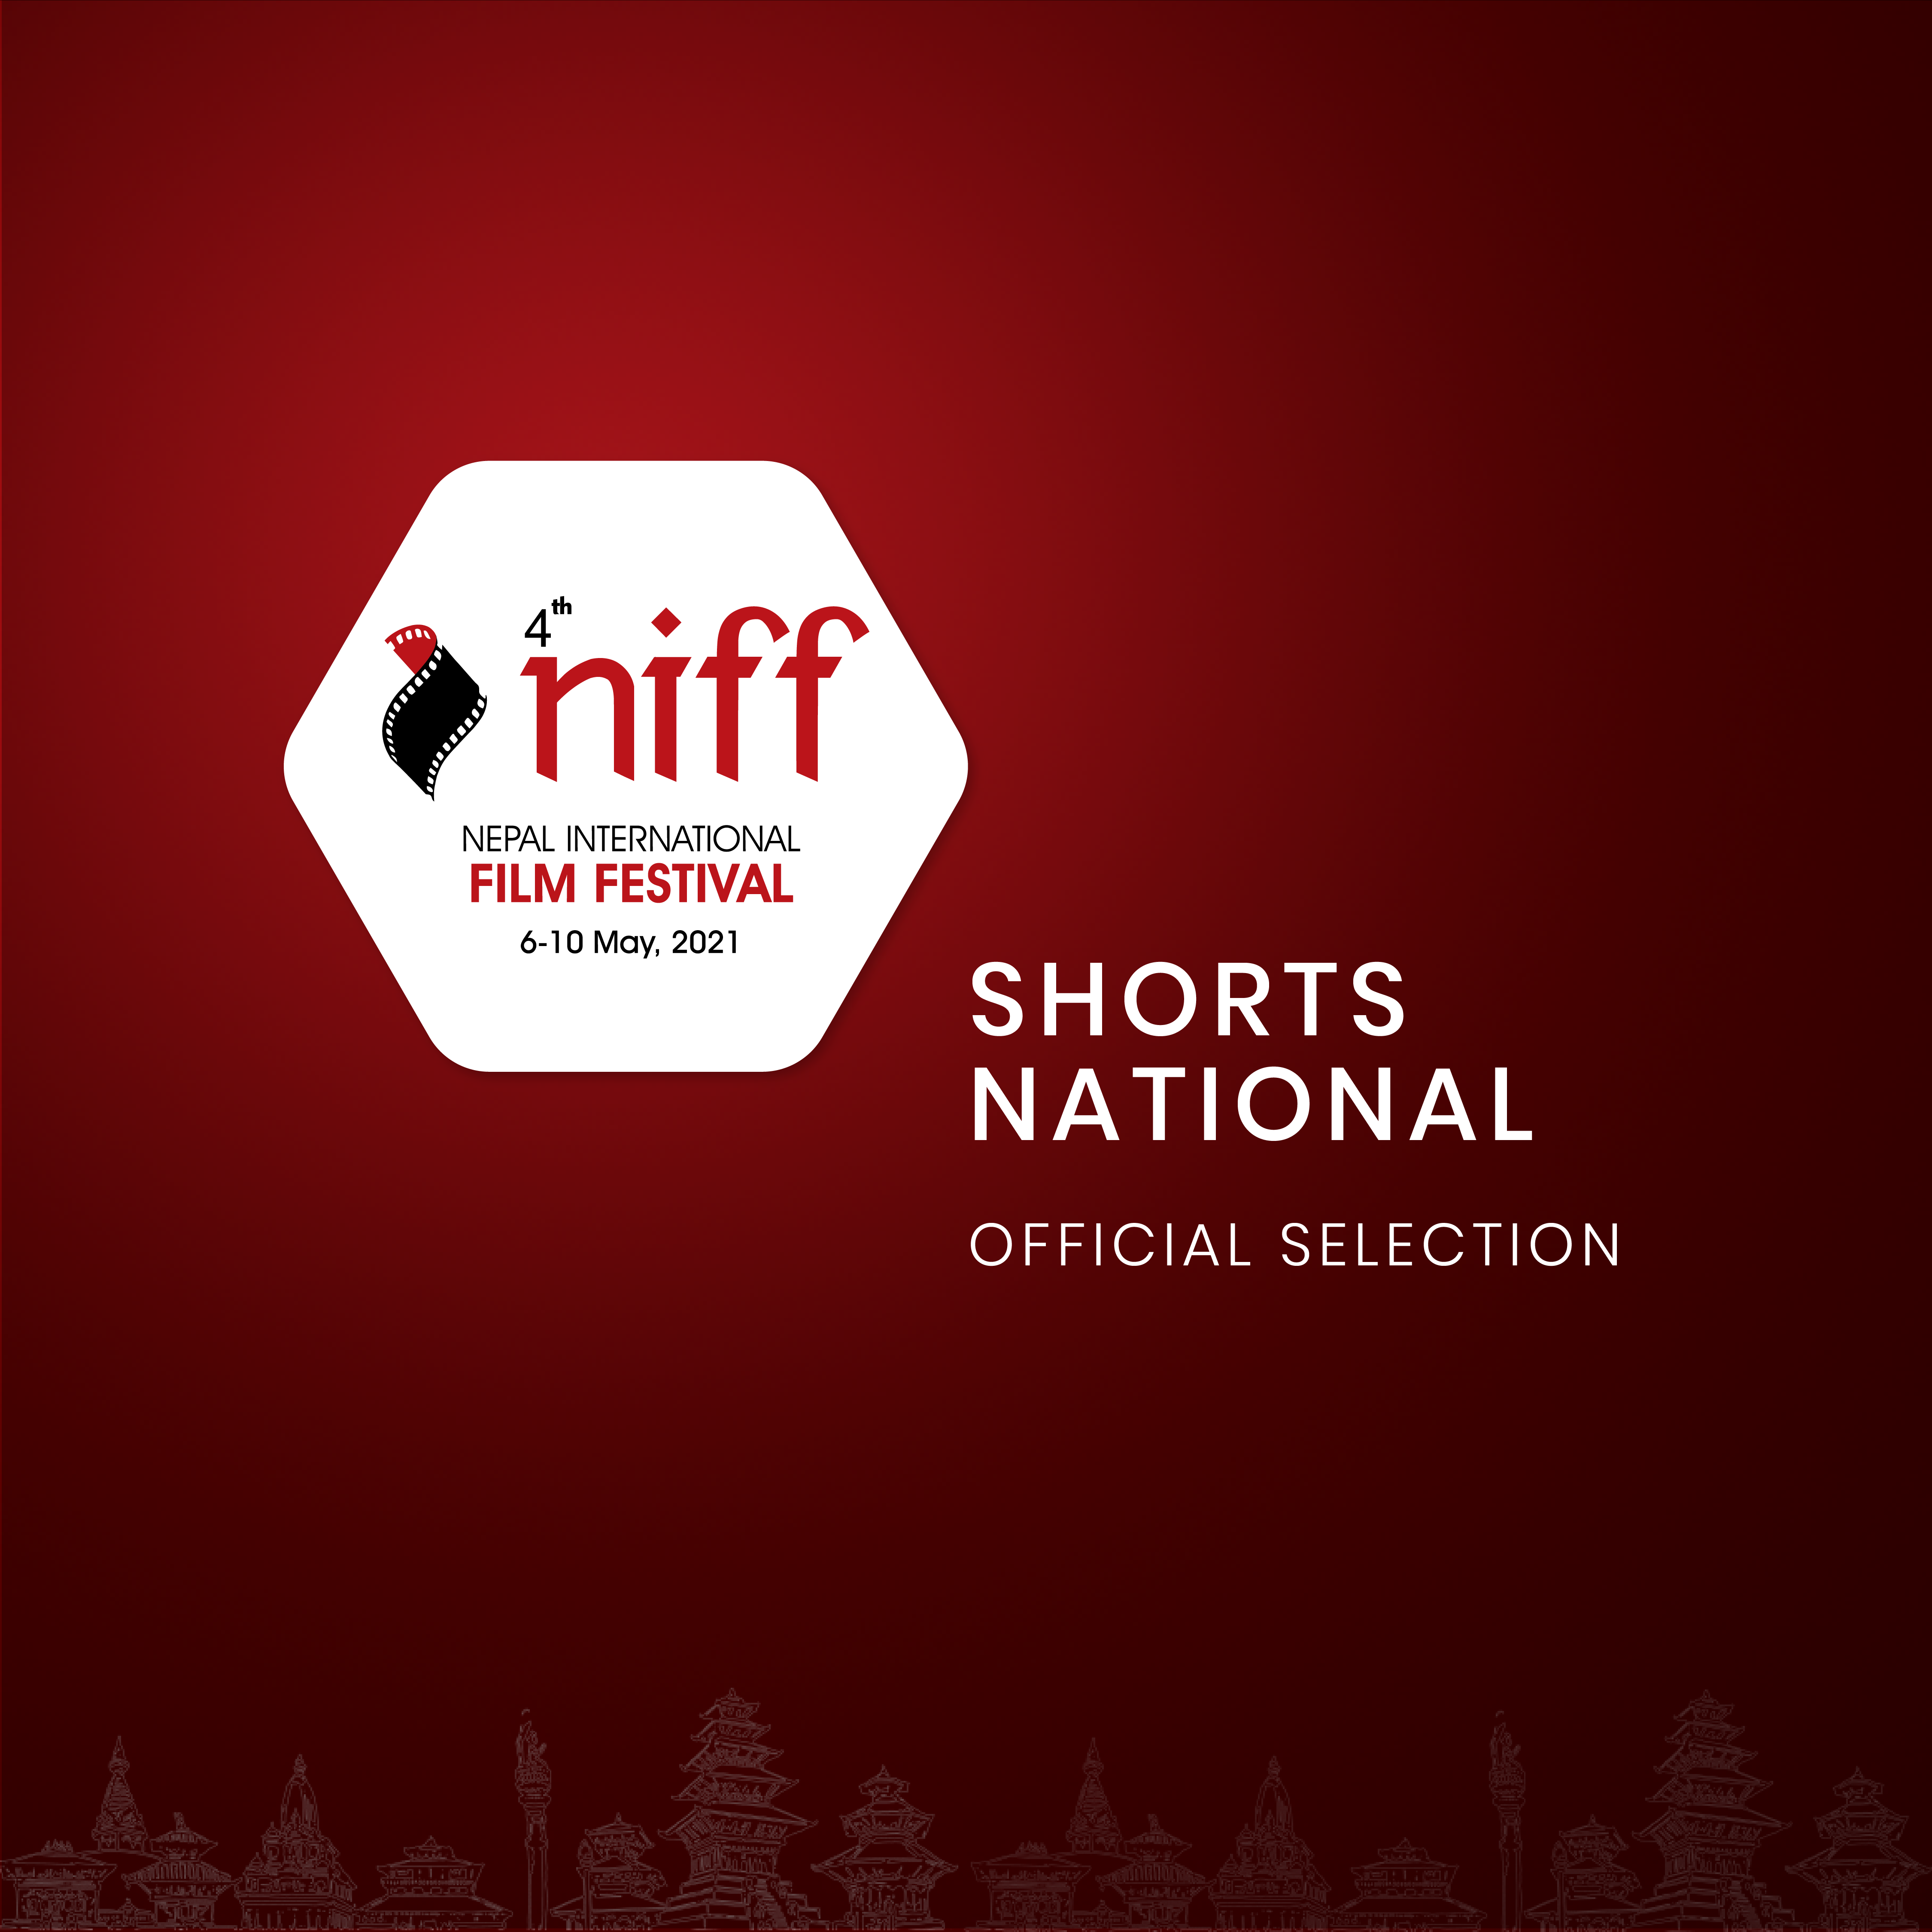 National Shorts Competition